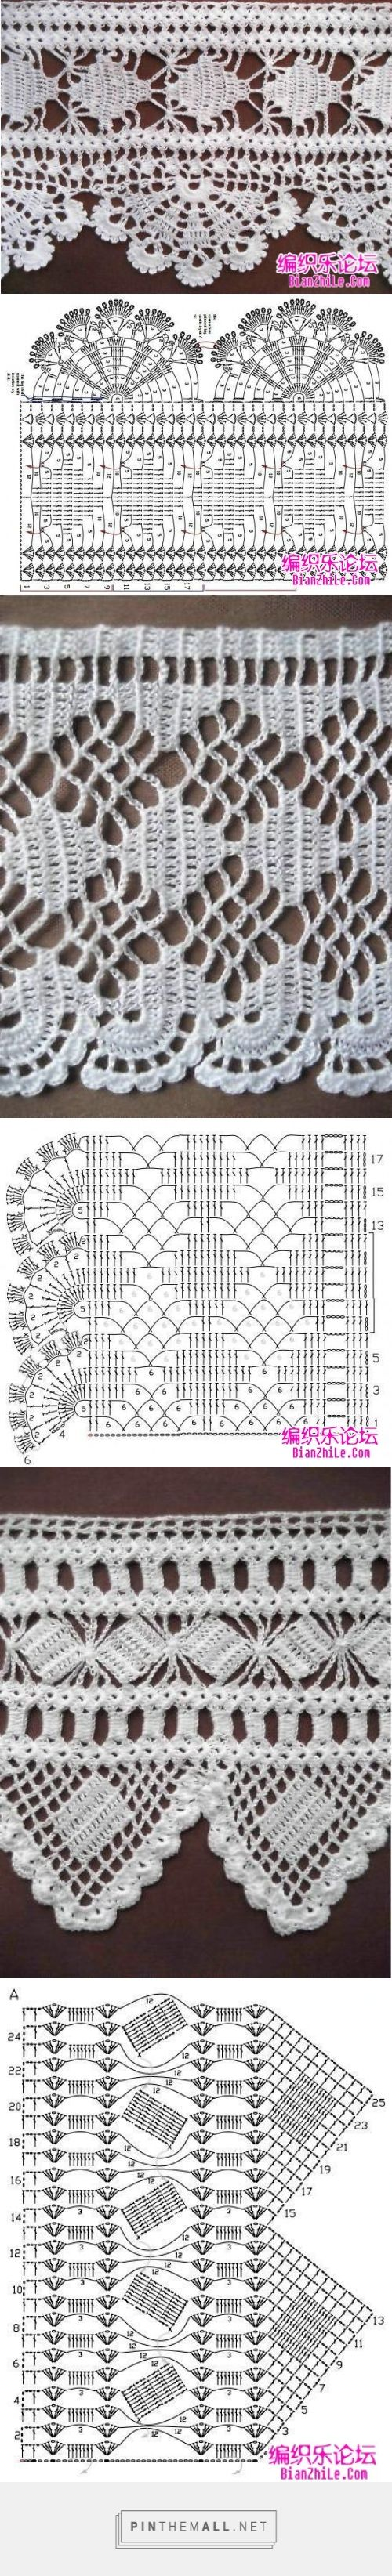 These crochet lace edgings are more intricate. Very good charts and samples by MyPicot; originally from the Home Work book, published 1891.